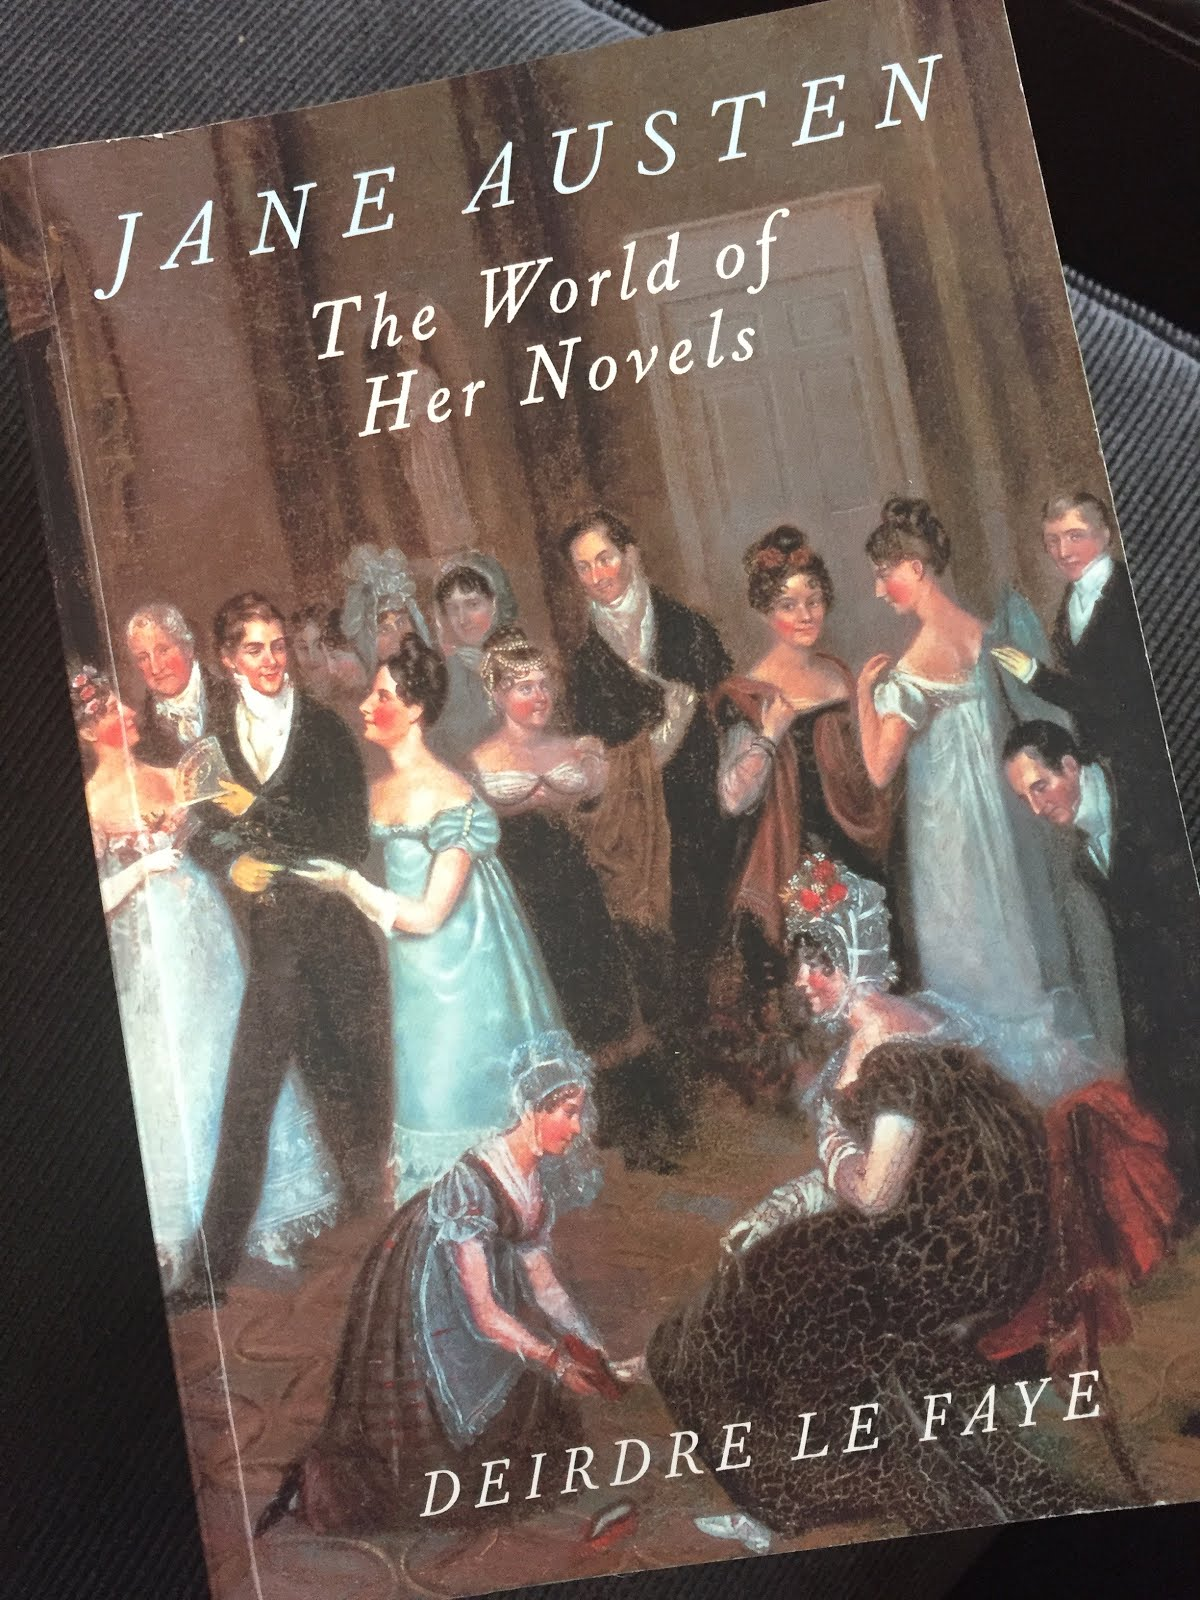 an analysis of the work of jane austen I wasn't the type of young person to seek out jane austen on my own  a recent analysis by the american association of univer  the boundaries between sex work .